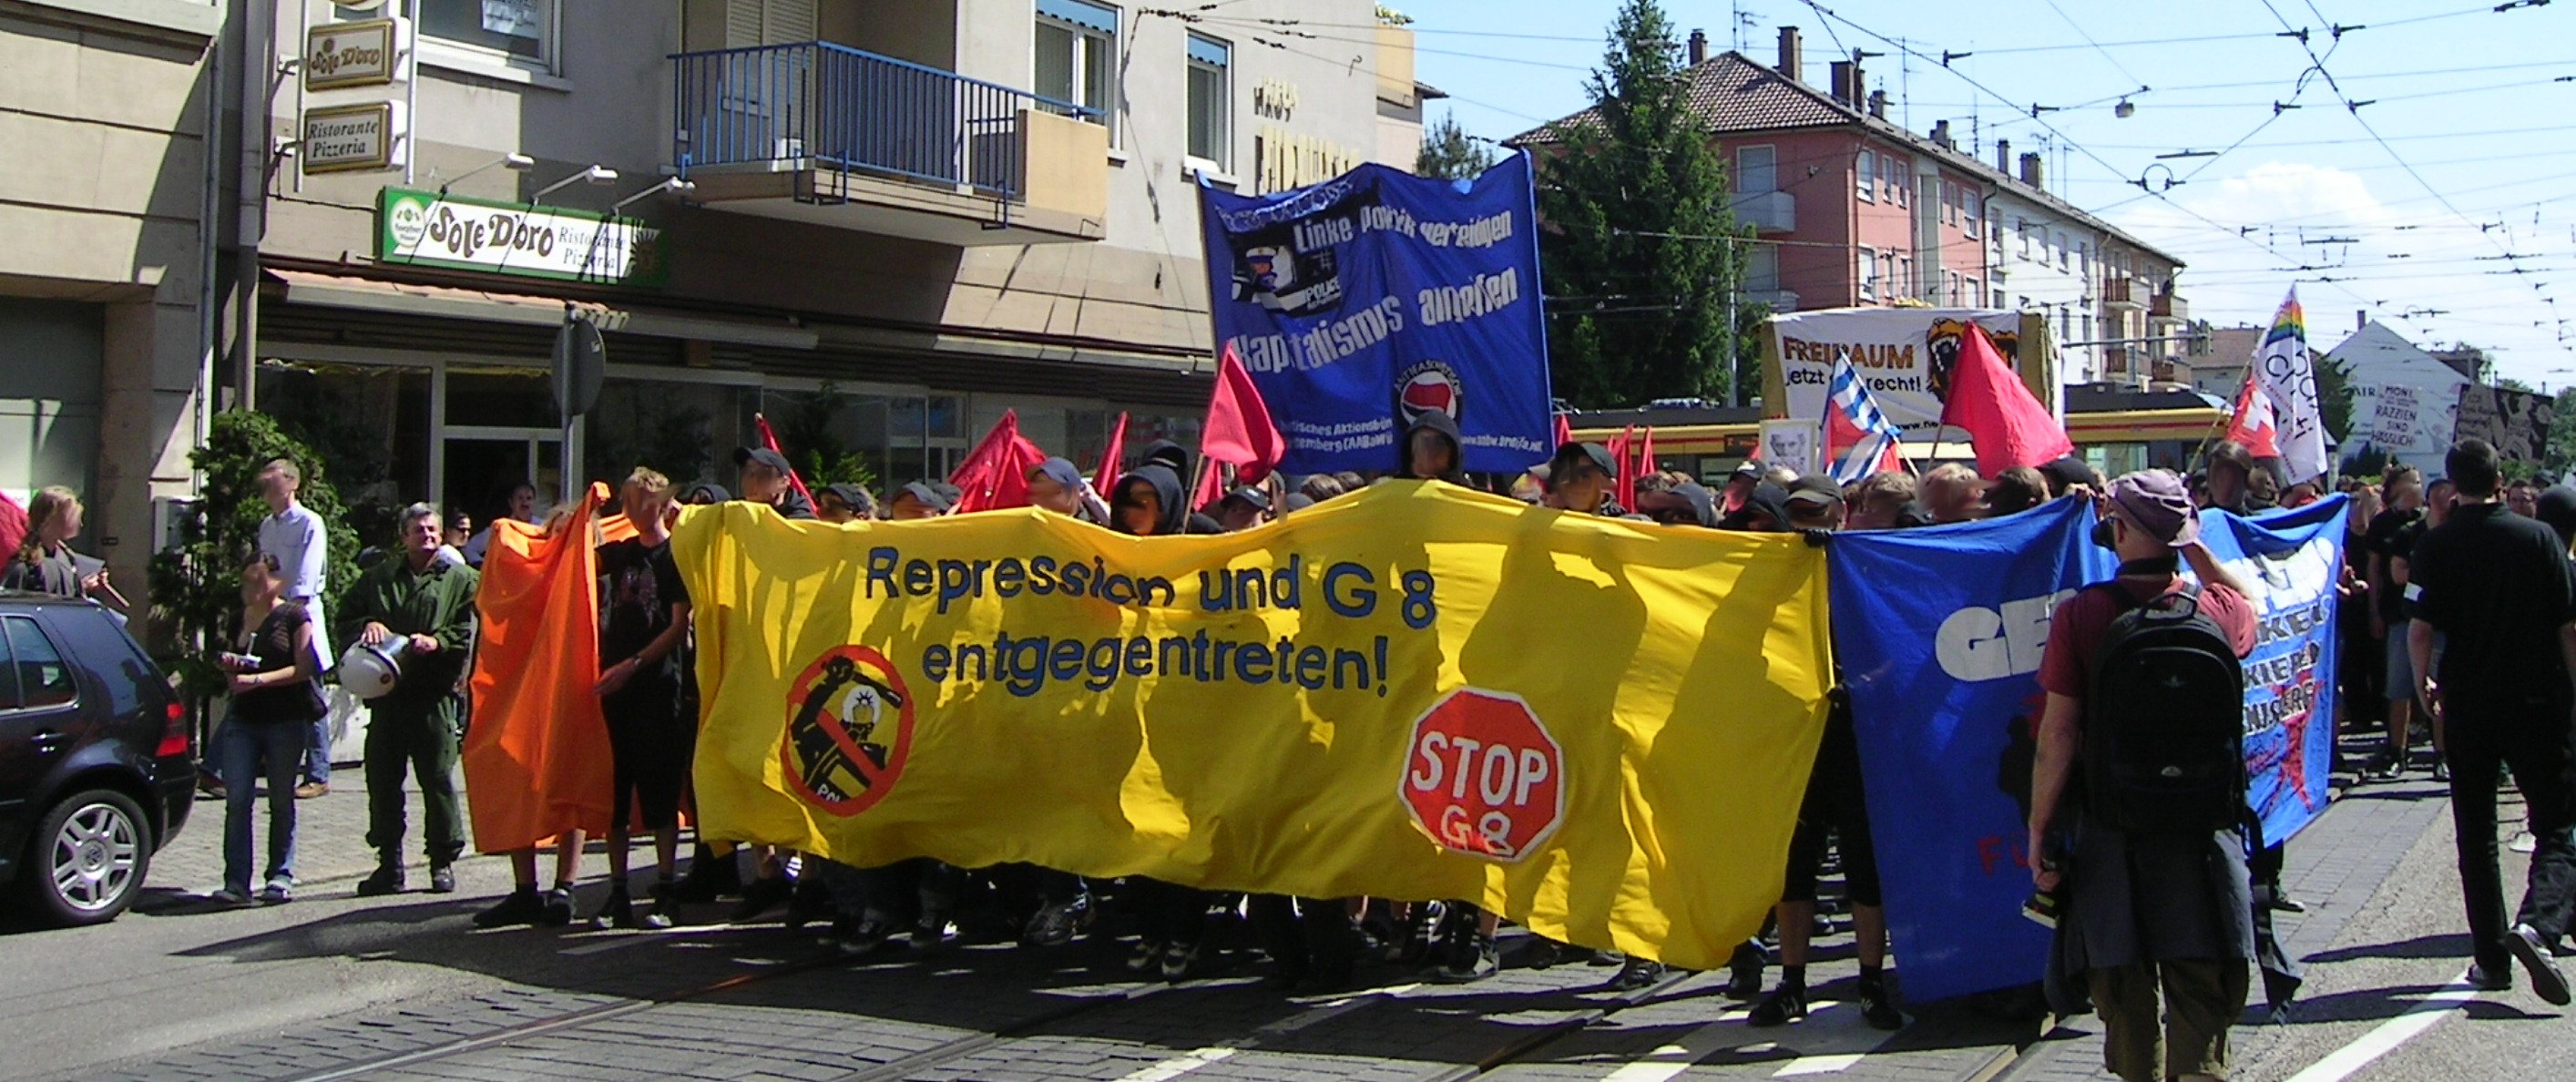 demonstration 19.5.2007 in karlsruhe